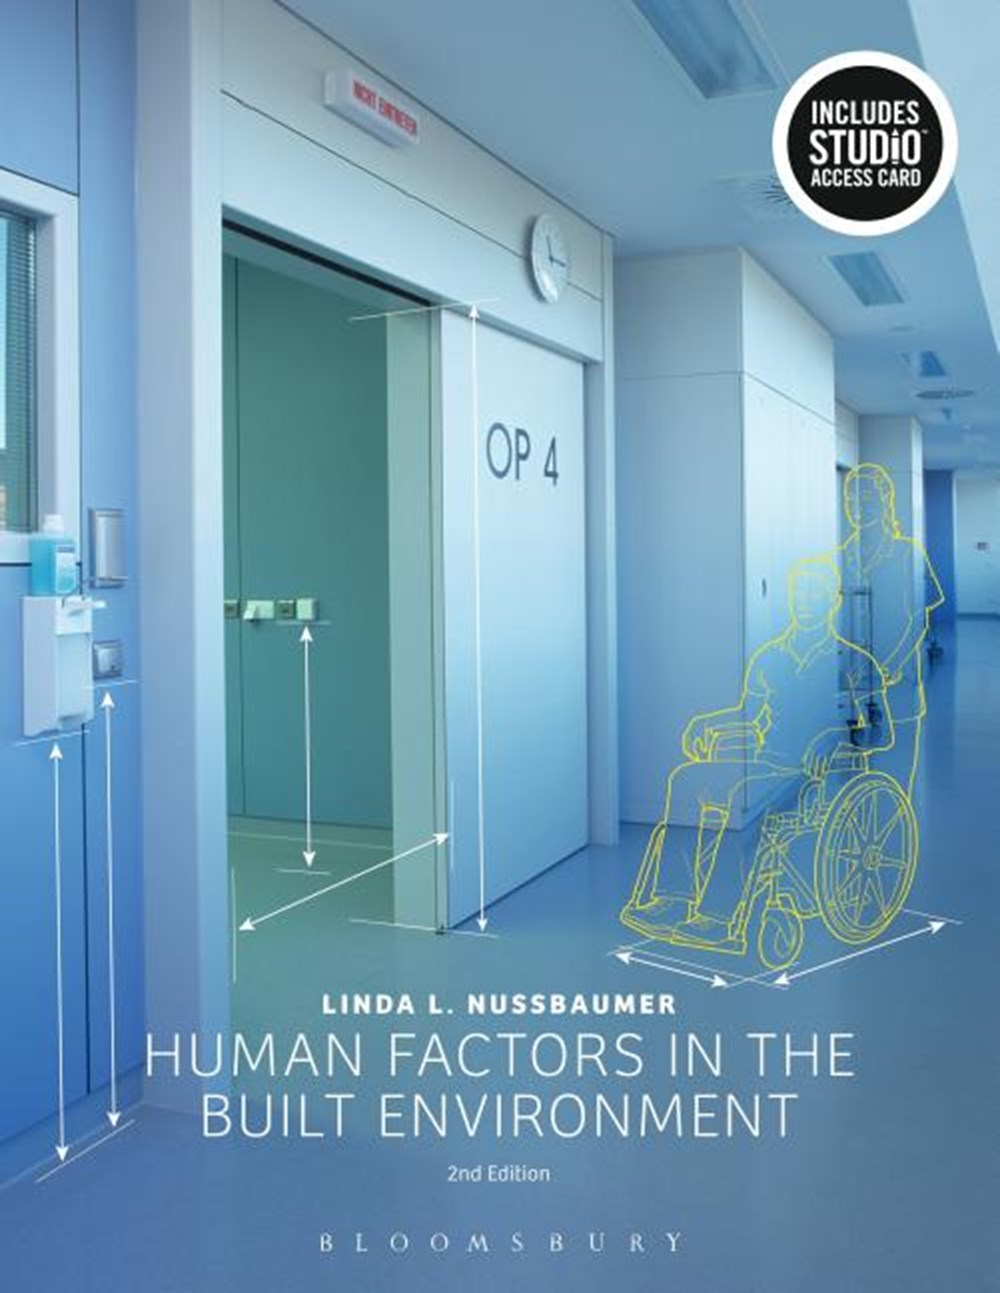 Human Factors in the Built Environment Bundle Book + Studio Access Card [With Access Code]